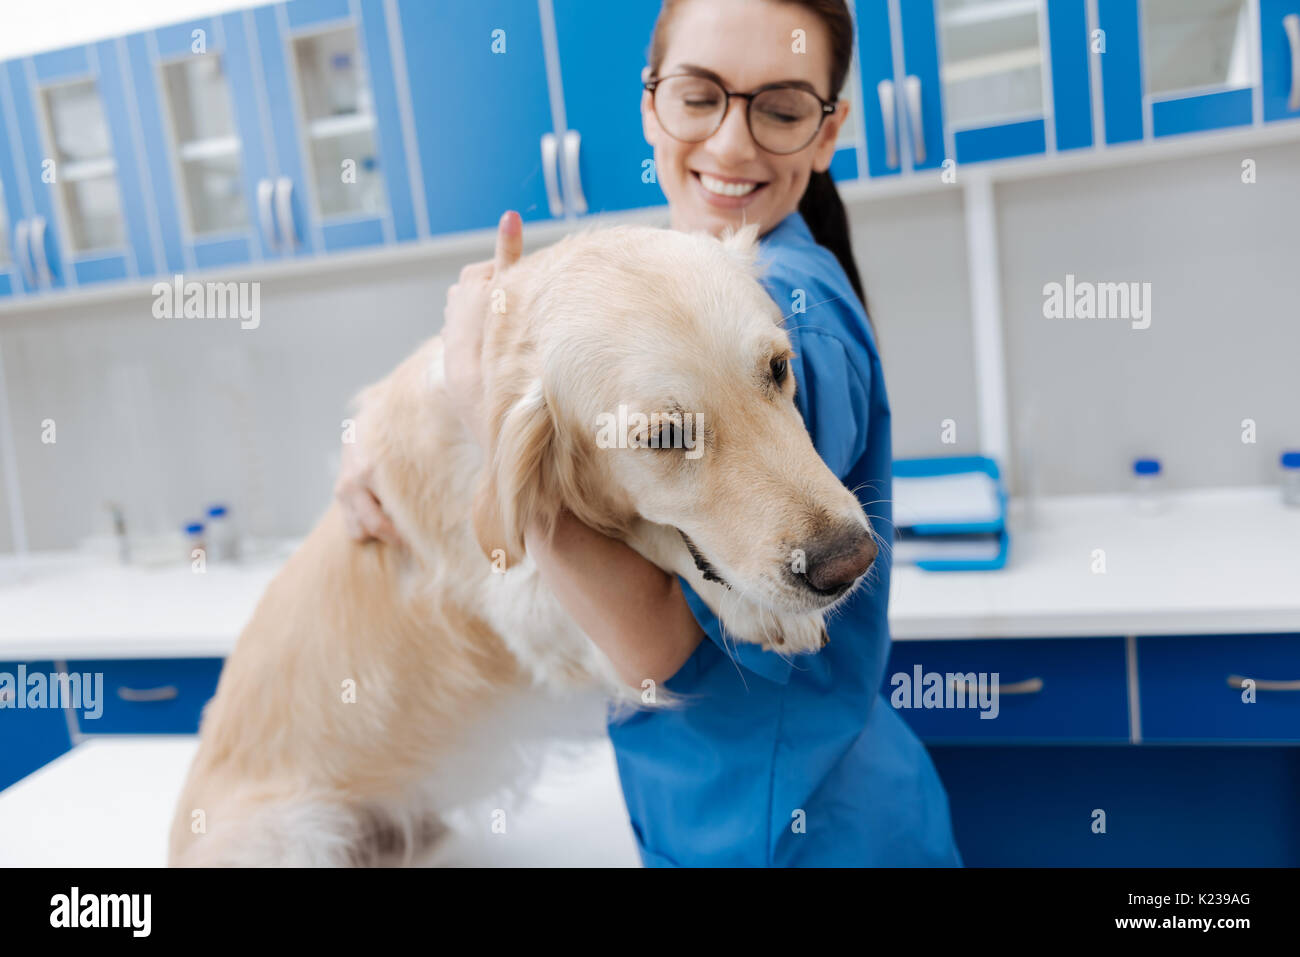 Delighted veterinary embracing docile dog - Stock Image